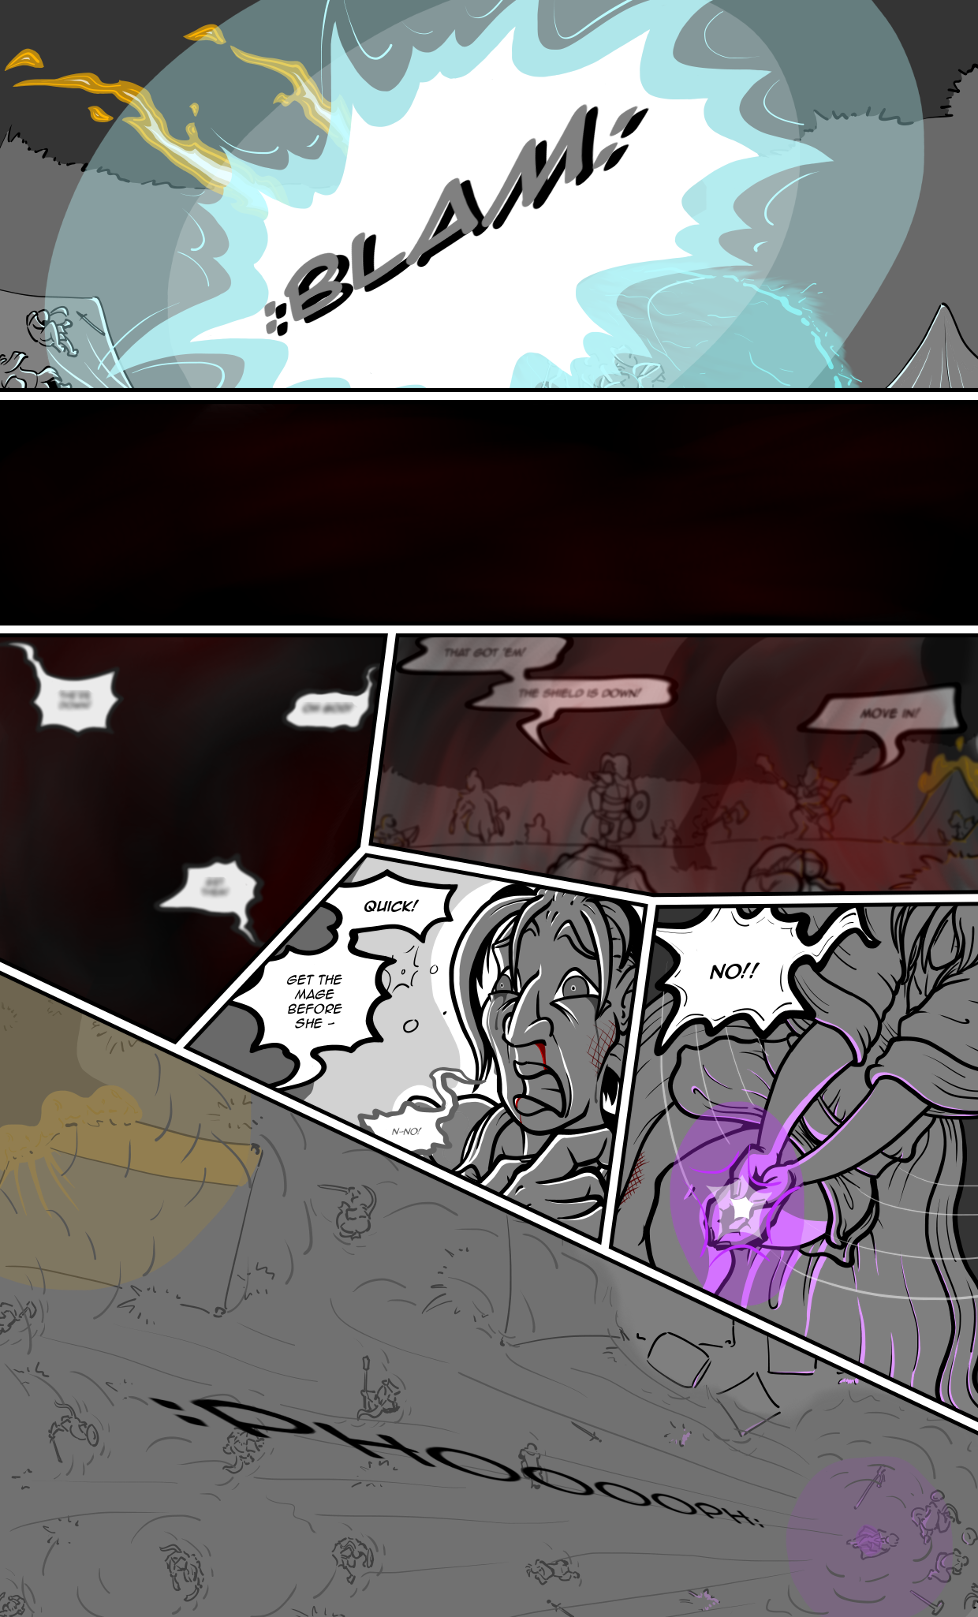 If this were a video game, panels 2 to 4 would be accompanied by the trademark missing ambient sound and loud beeping noise to indicate the stun effect.